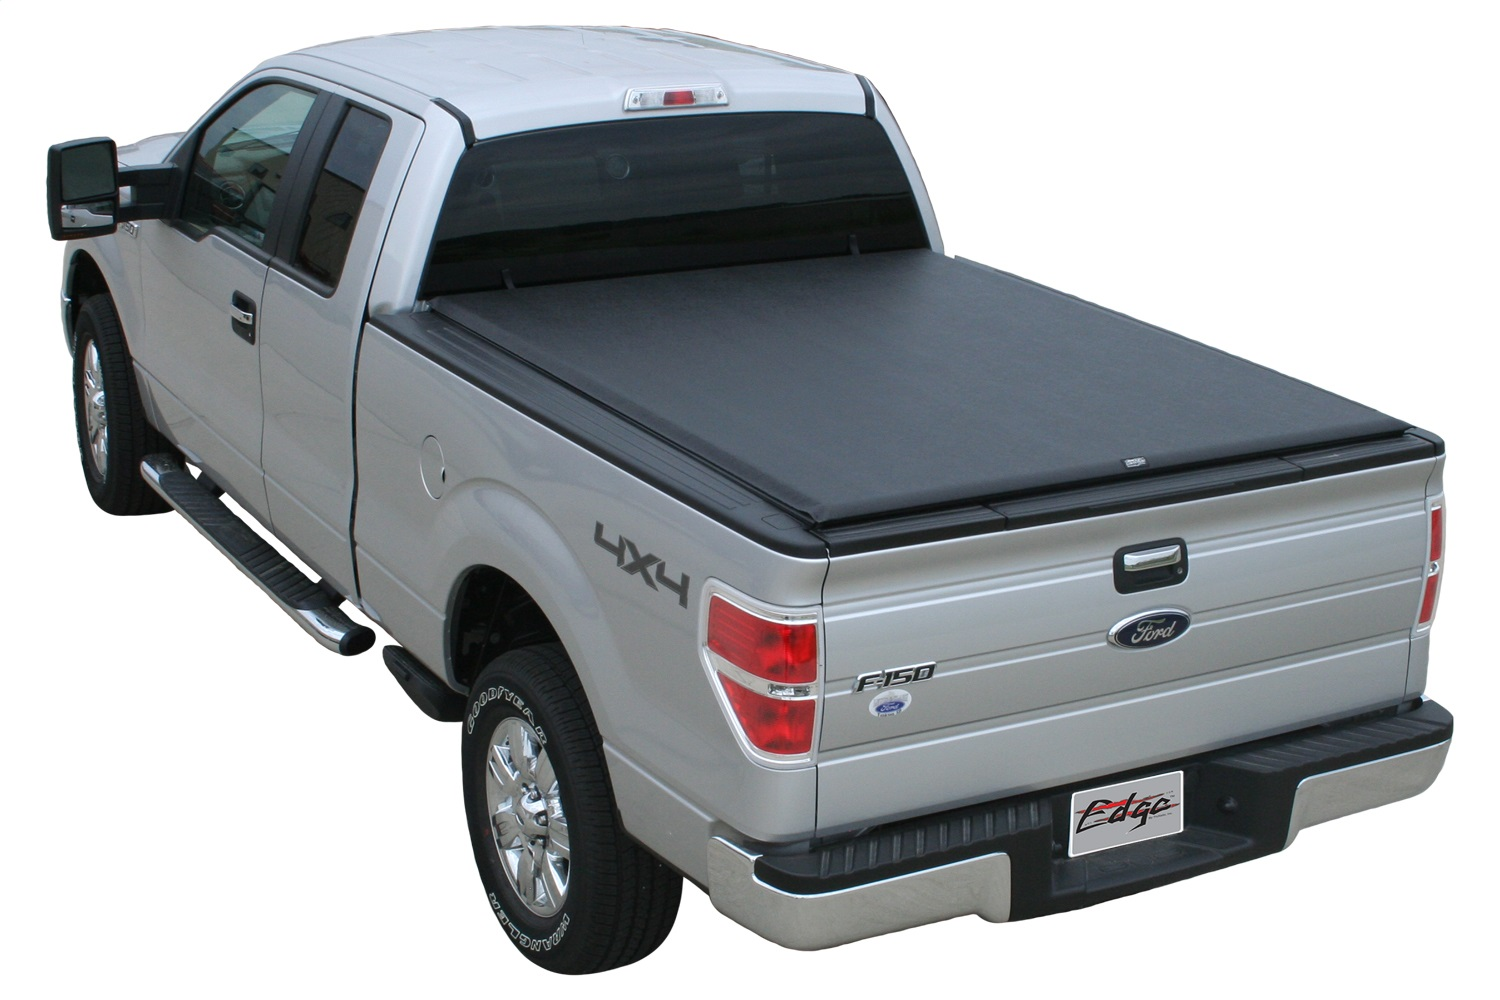 Truxedo (Shur-co) Tonneau Cover (877601)